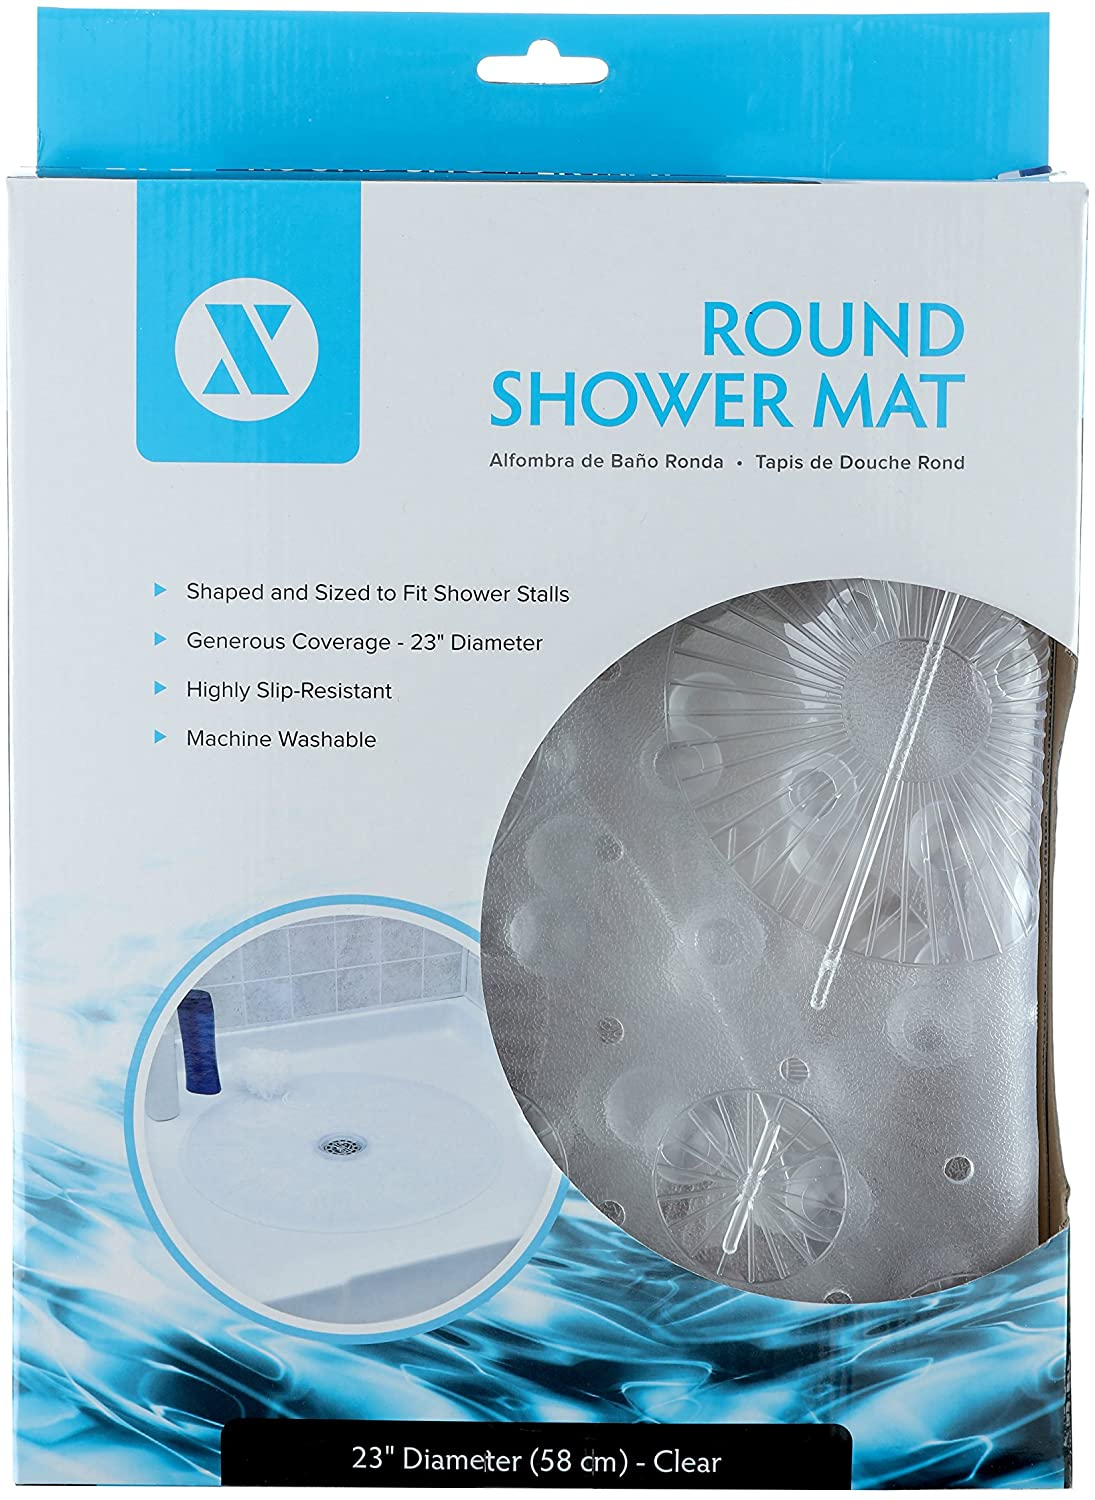 SlipX Solutions White Round Shower Stall Mat Provides Generous Coverage /& Reliable Slip-Resistance 58cm Sides, 160+ Suction Cups, Great Drainage